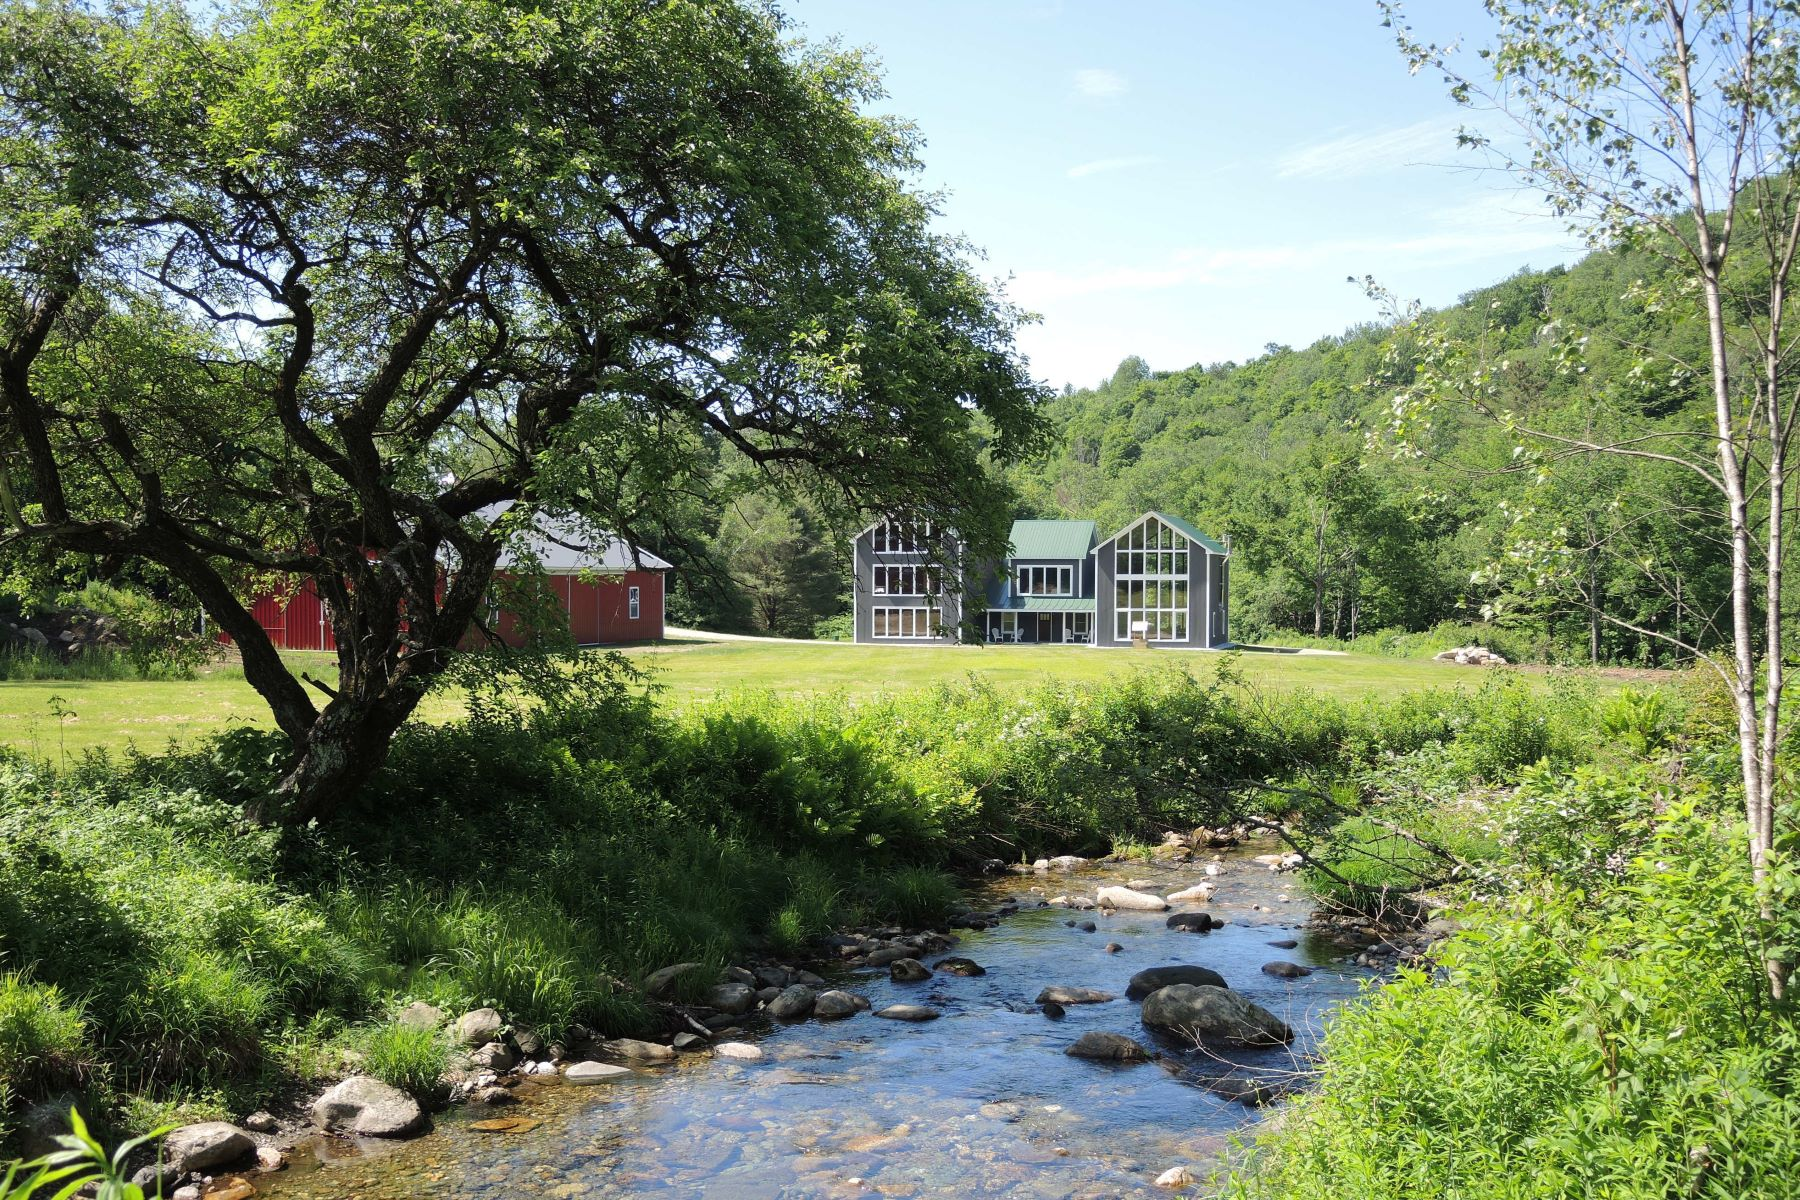 Single Family Home for Sale at Steam Mill Brook Lodge 5A Baker Brook Trl Chittenden, Vermont 05737 United States